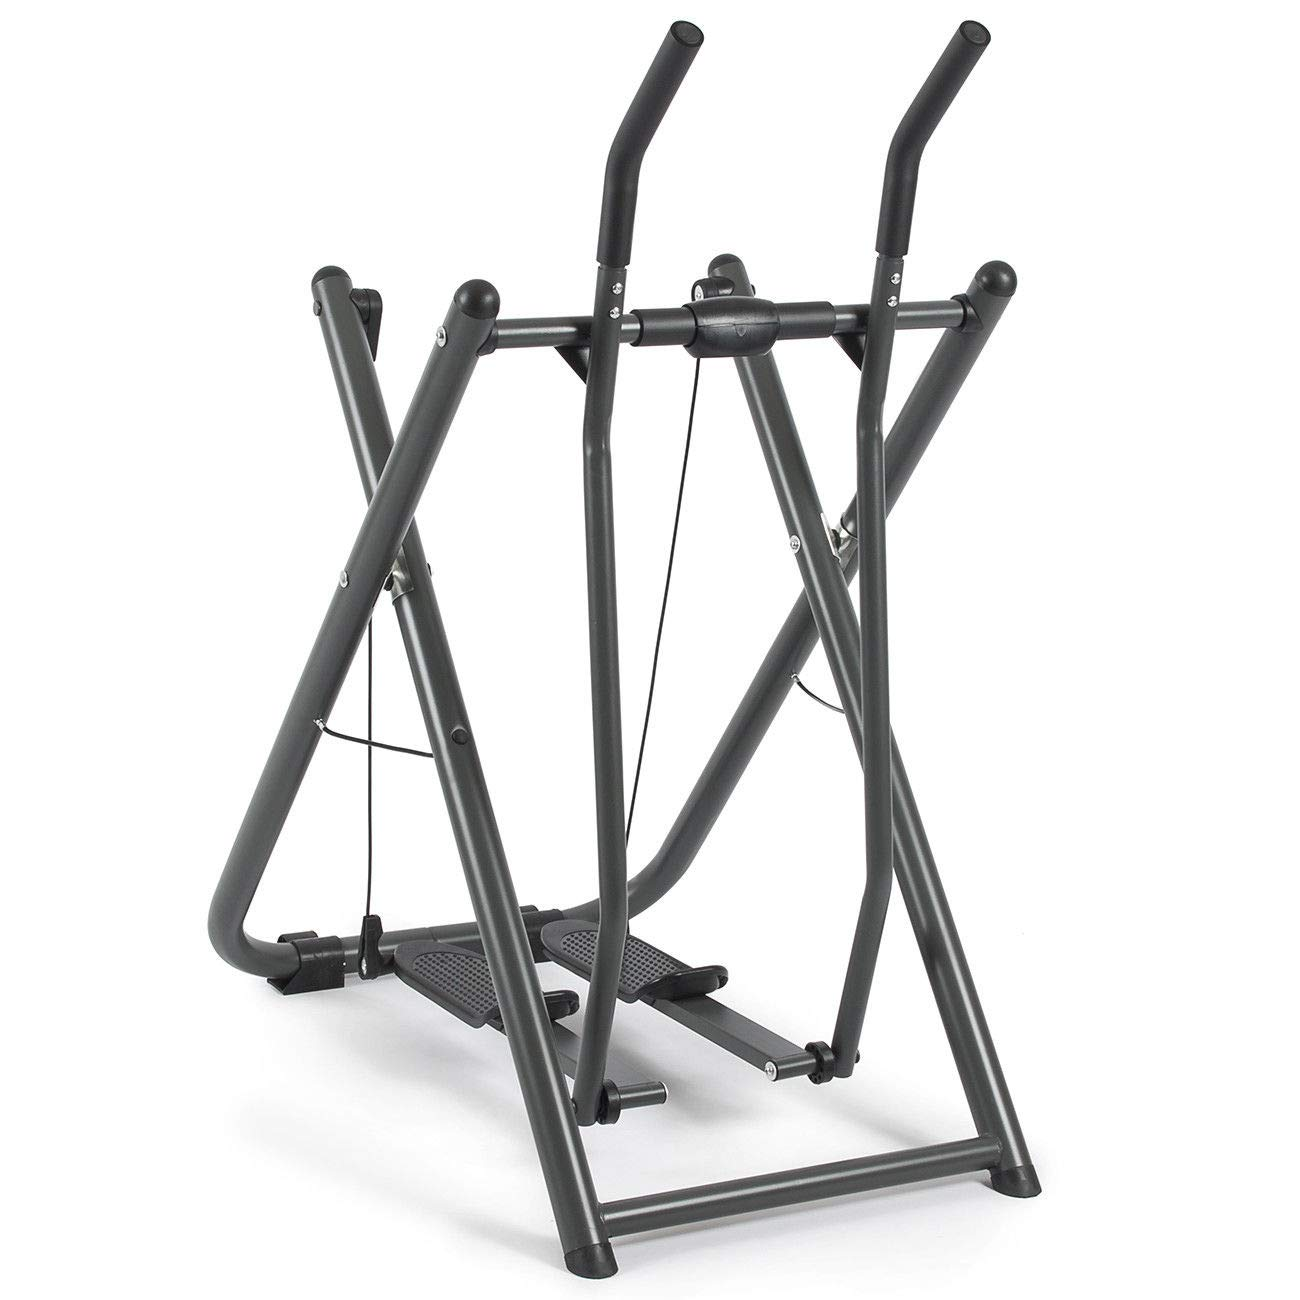 nitipezzo High-Performance, Extra-Wide Edge Glider Elliptical Exercise Machine Fitness Home Gym Workout Air Walker New